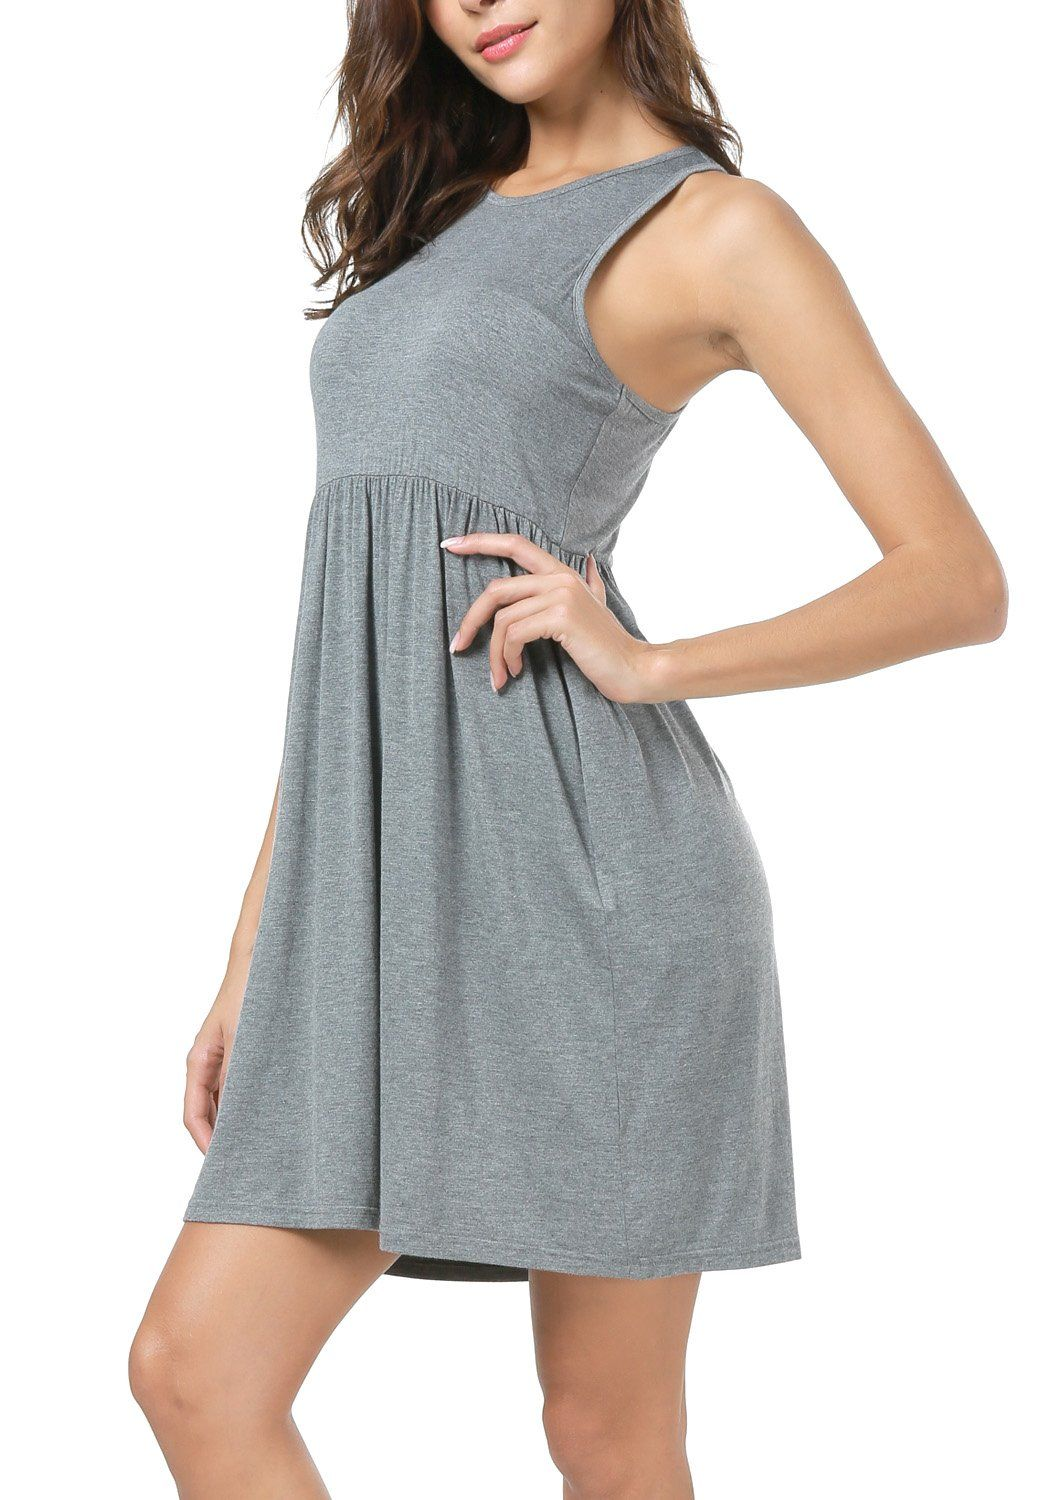 Lainab Womens Raceback Tank Plain Short Pleated Flowy Casual Dress Dark Gray Xl Details Can Be Found By Clicking On T Flowy Dress Casual Casual Dress Fashion [ 1500 x 1050 Pixel ]